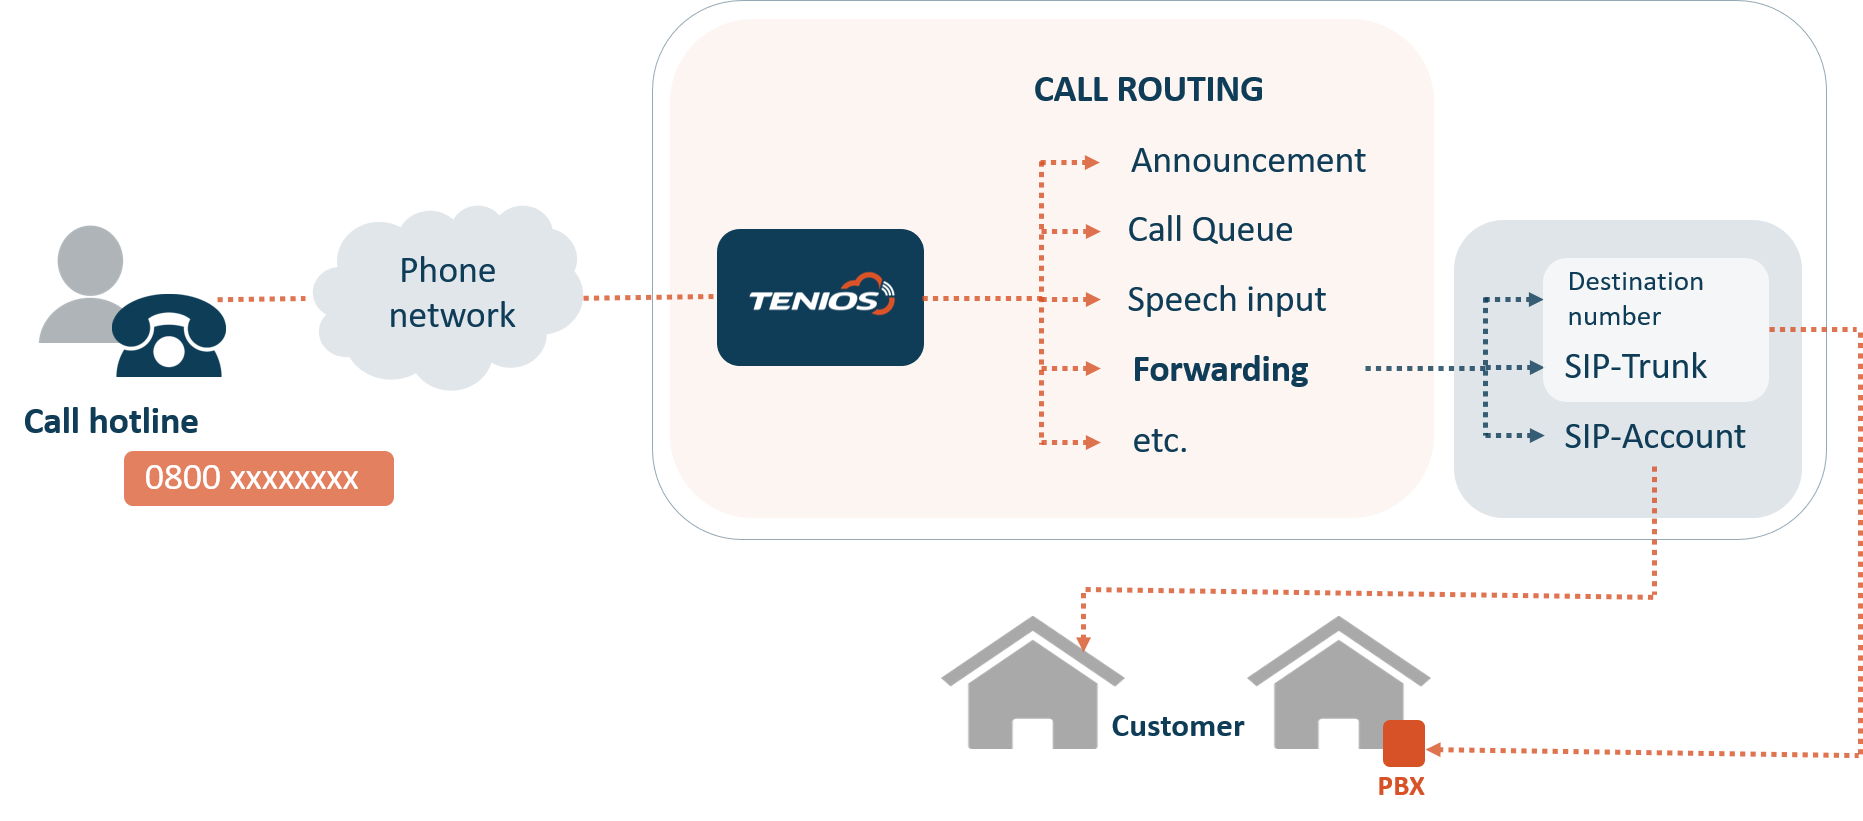 call routing